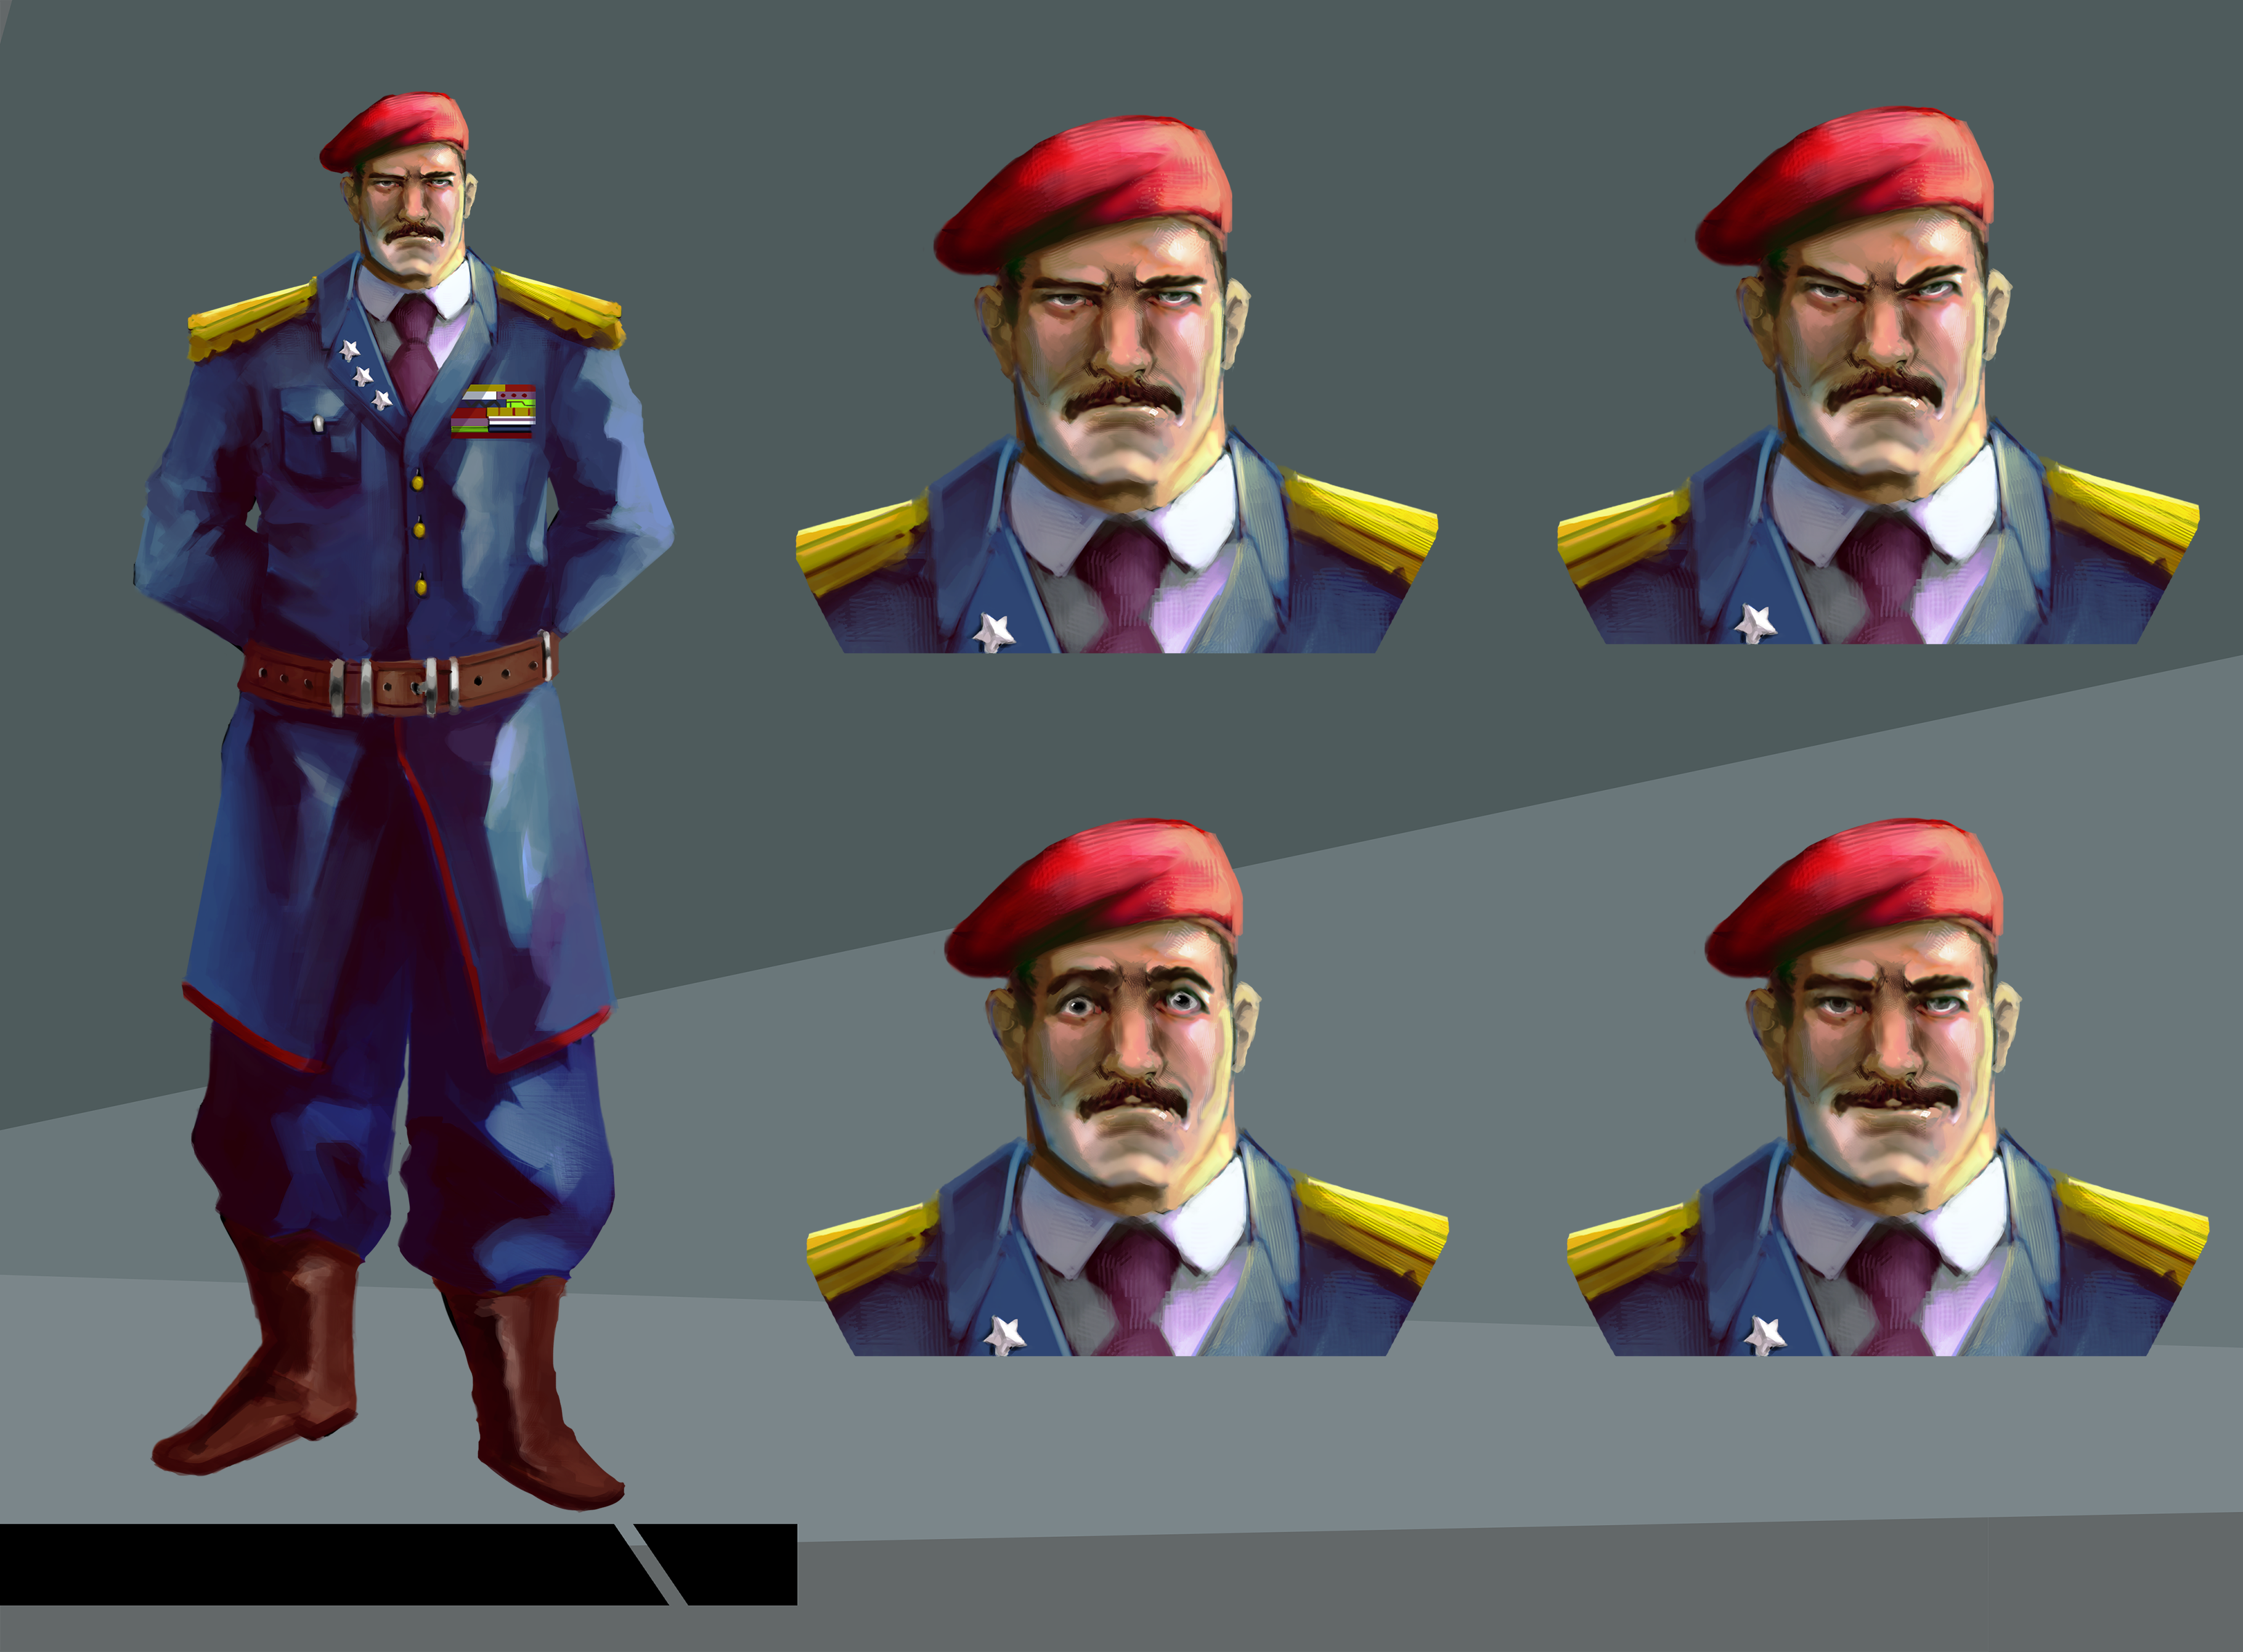 Then general with his 4 expressions.